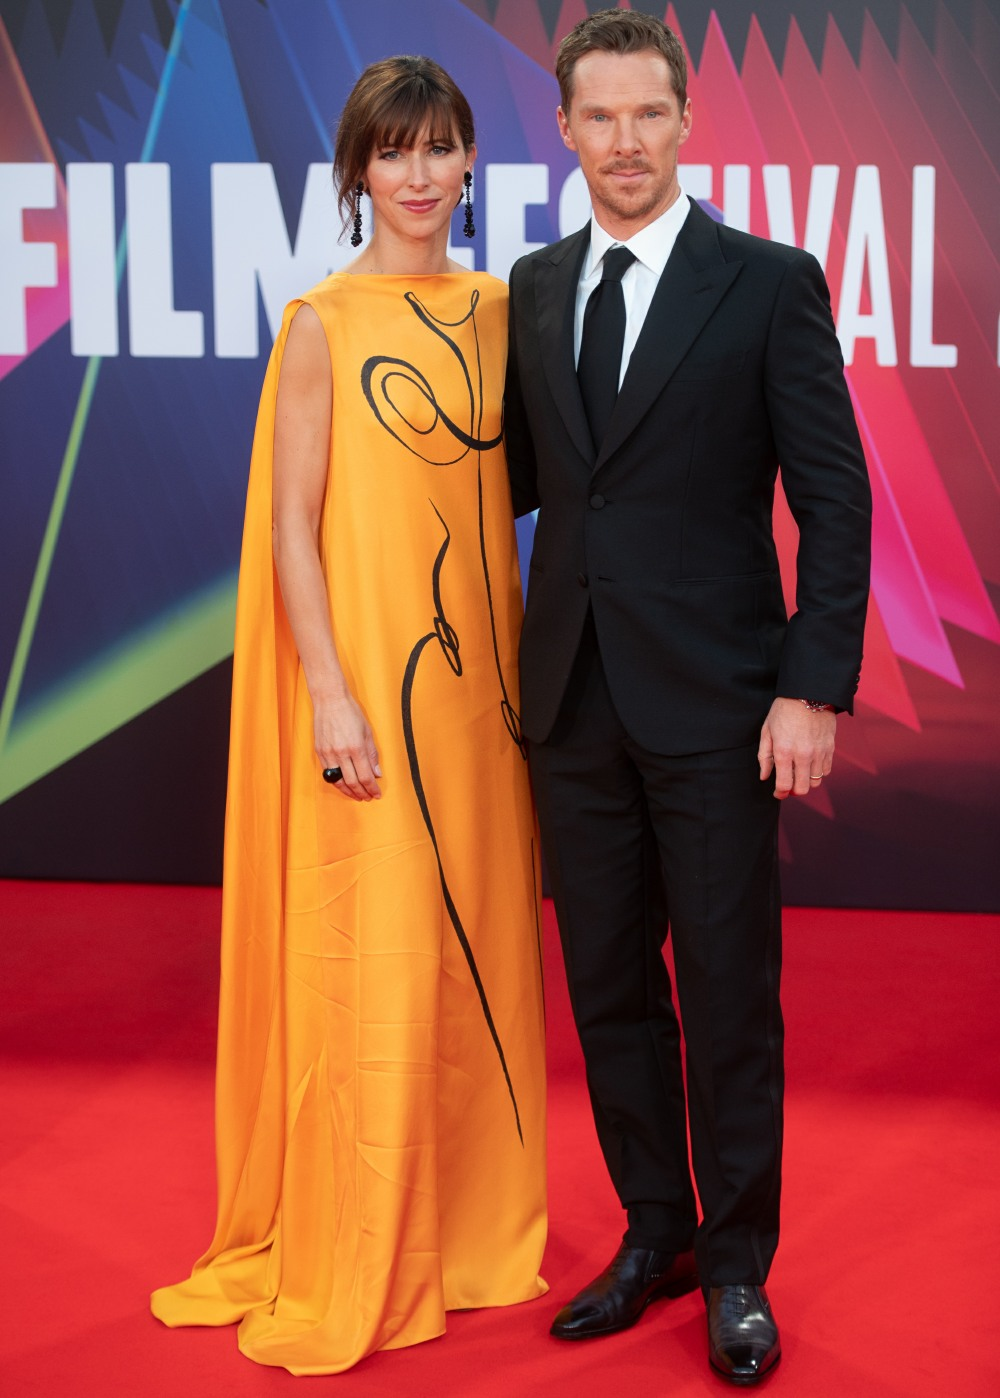 London Film Festival 2021 - The Power Of The Dog UK Premiere Arrivals at Royal Festival Hall, Southbank Centre, London